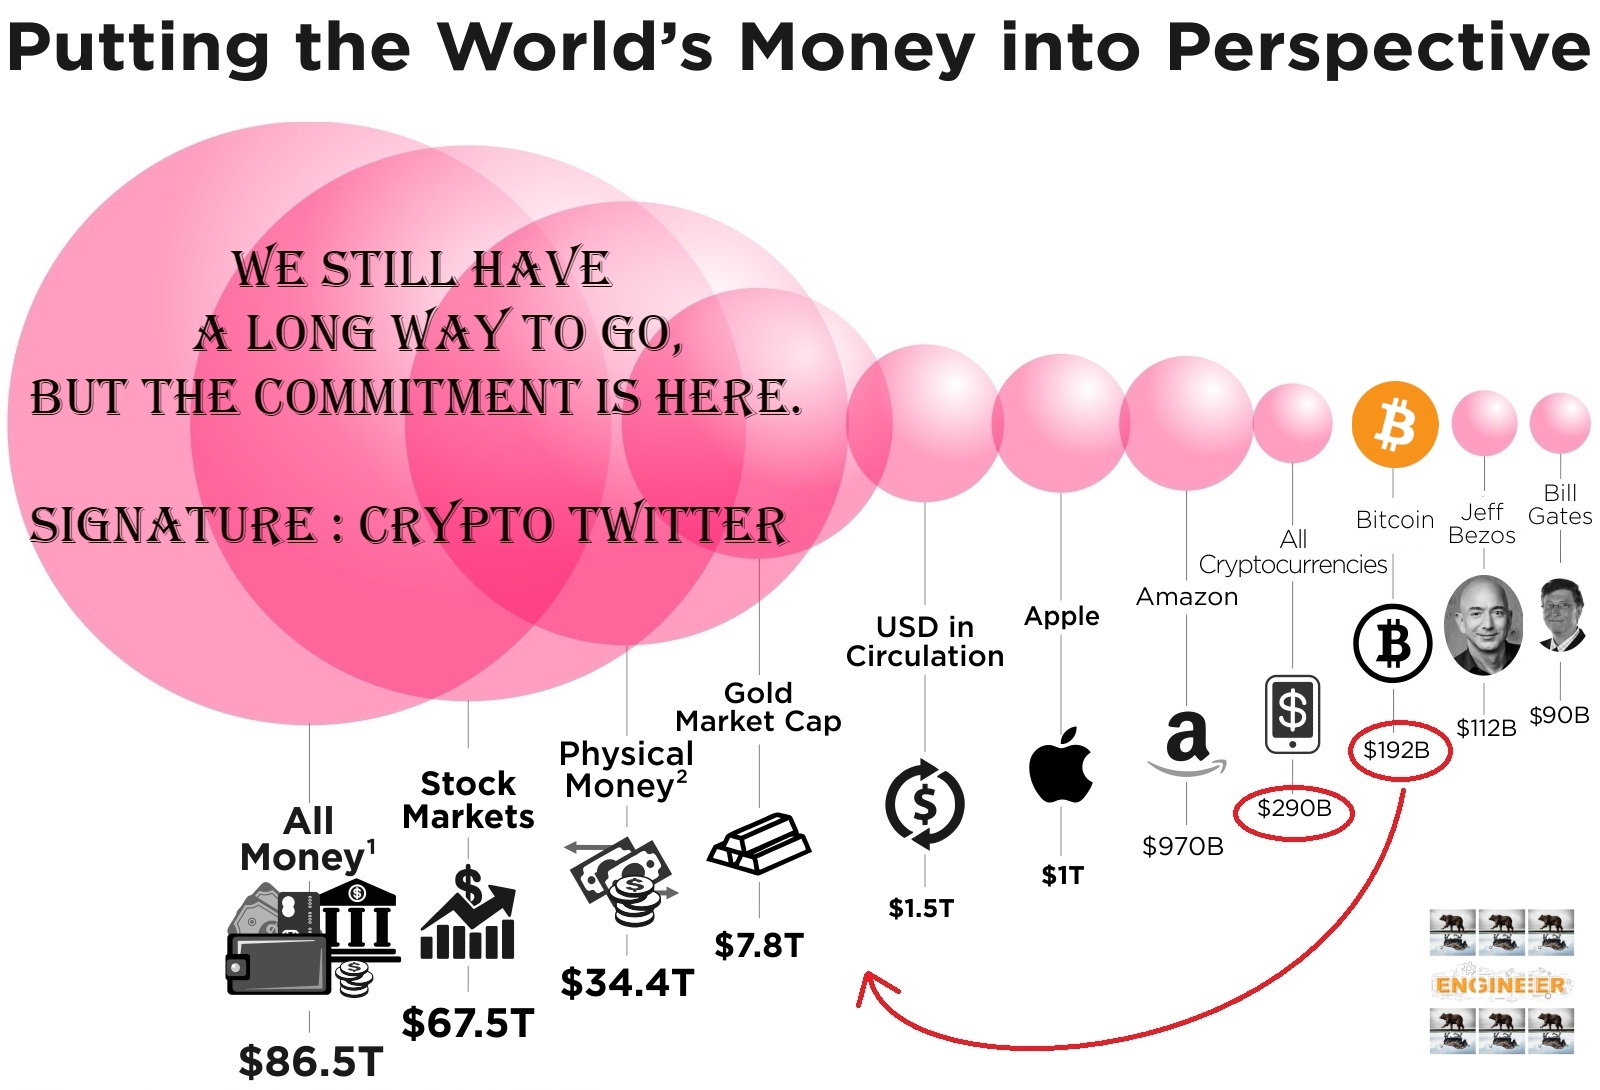 bitcoin-money-economy-in-perspective-7dd6 (1)